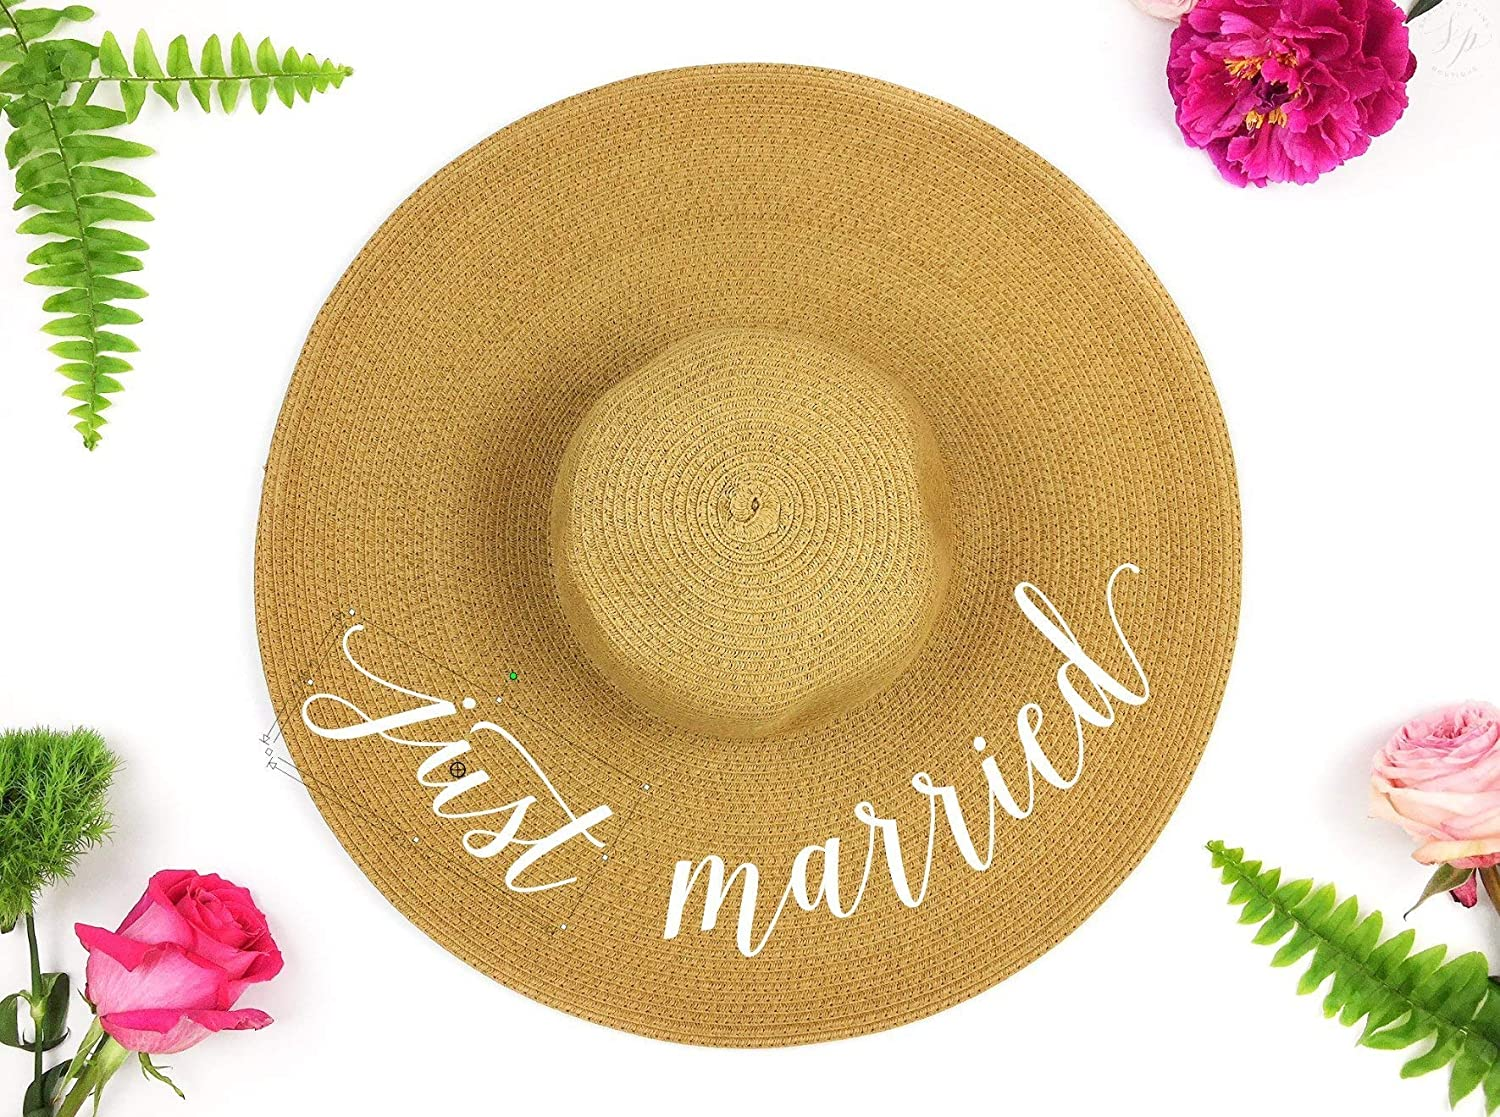 Just Married Honeymoon Beach Floppy Hat, Bride Beach hat, Beach Hat, Honeymoon Hat, Floppy Bride Hat, Just Married Hat, wifey hat, Honeymooning Hat, sequin beach hat